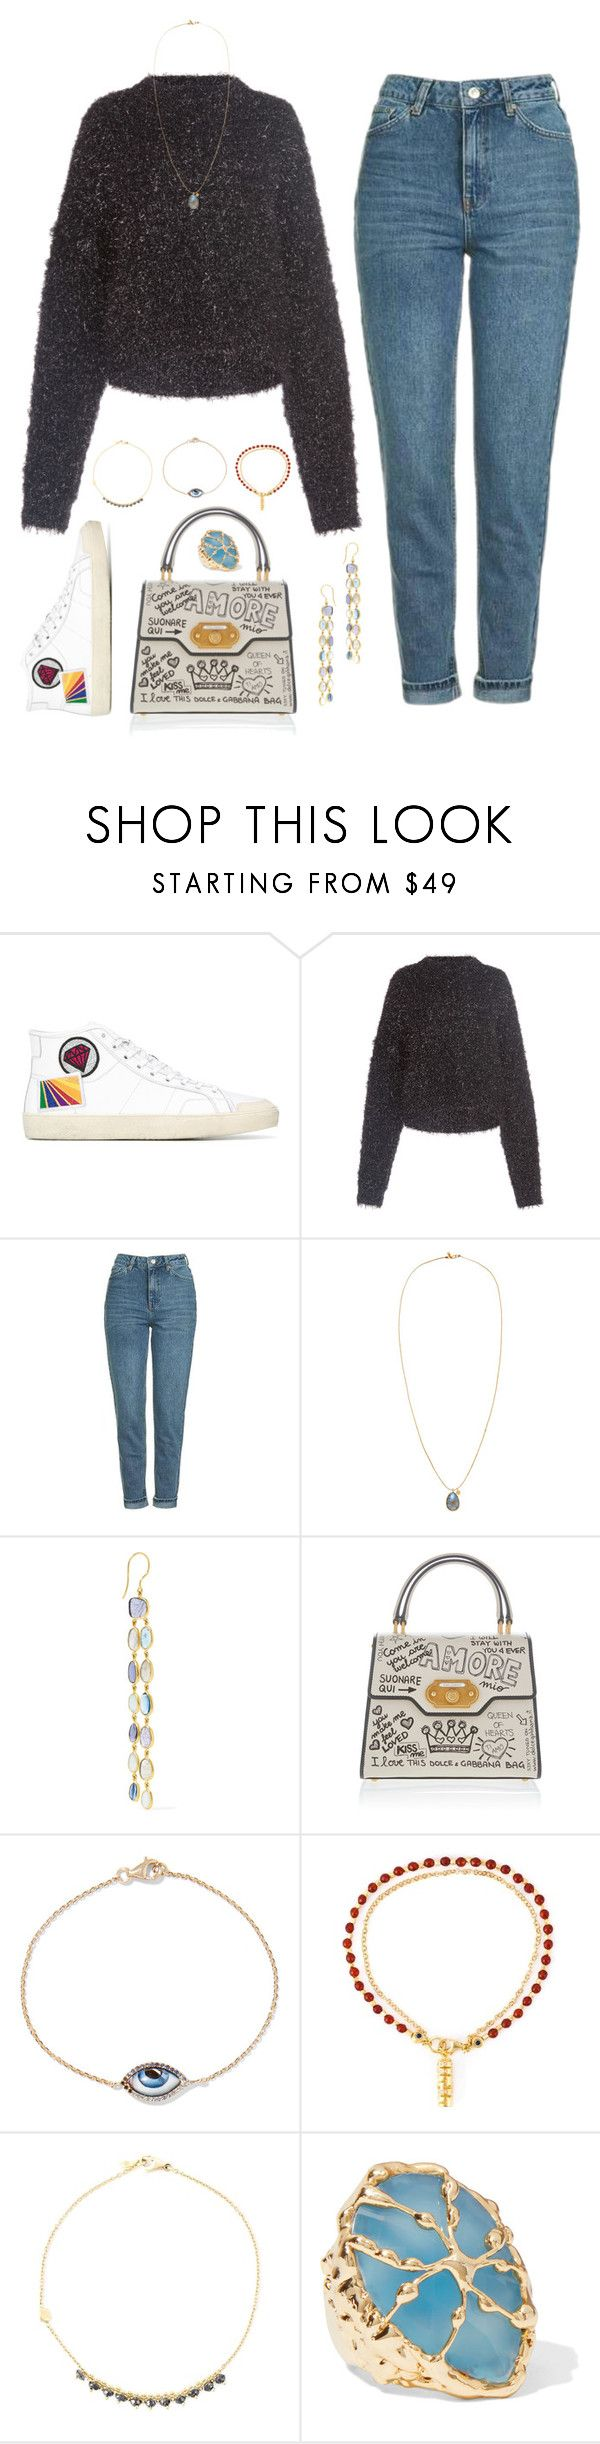 """LOCATION"" by anaandpizza ❤ liked on Polyvore featuring Yves Saint Laurent, Isabel Marant, Topshop, Pippa Small, Dolce&Gabbana, lito, Astley Clarke, Natasha Collis and Rosantica"